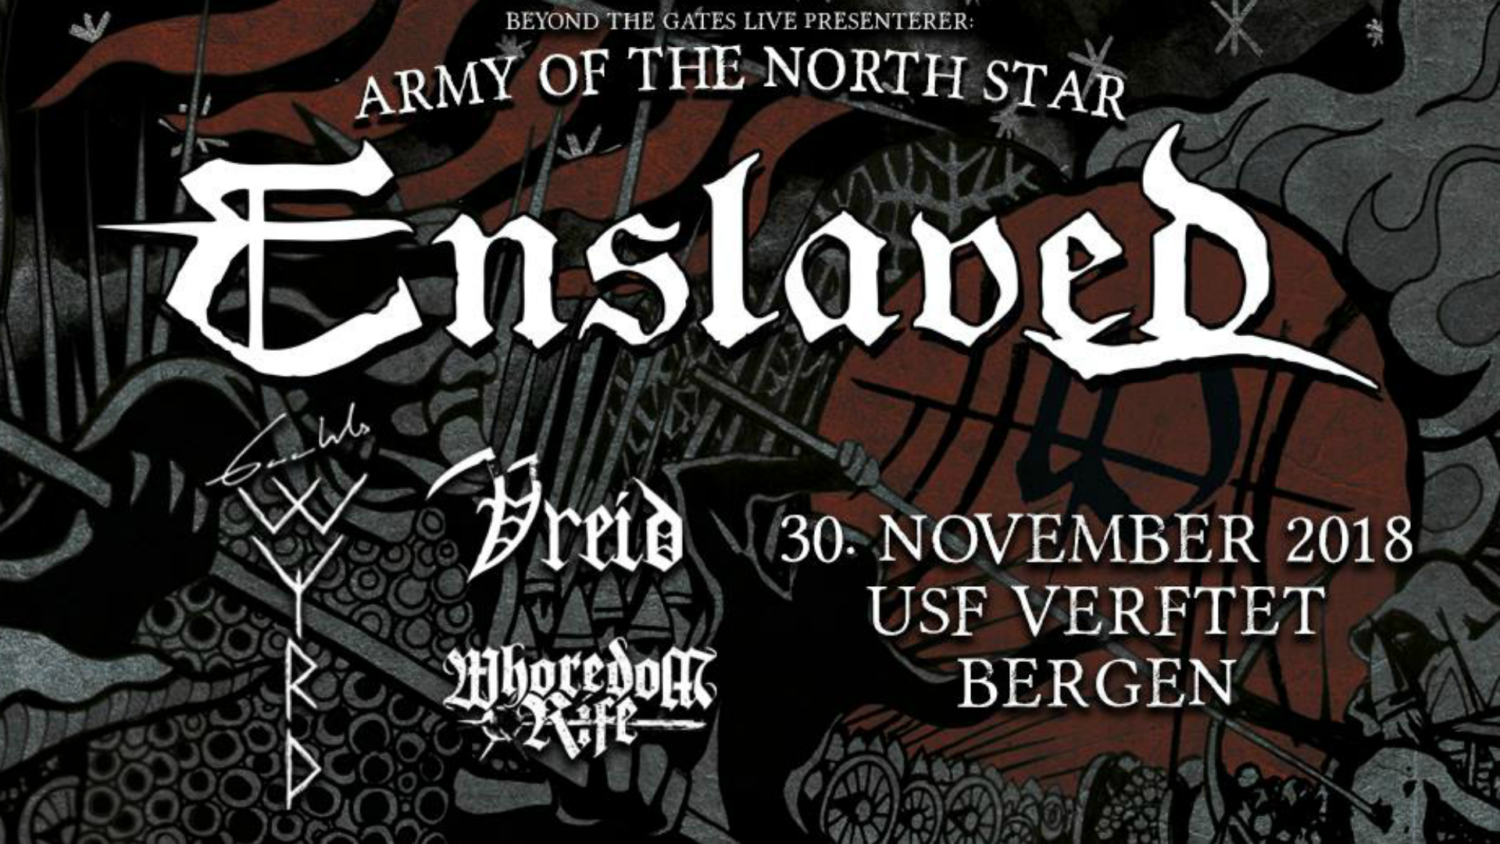 BILDE ARMY OF THE NORTH STAR USF VERFTET BERGEN BEYOND THE GATES ENSLAVED WYRD GAAHL VREID WHOREDOM RIFE